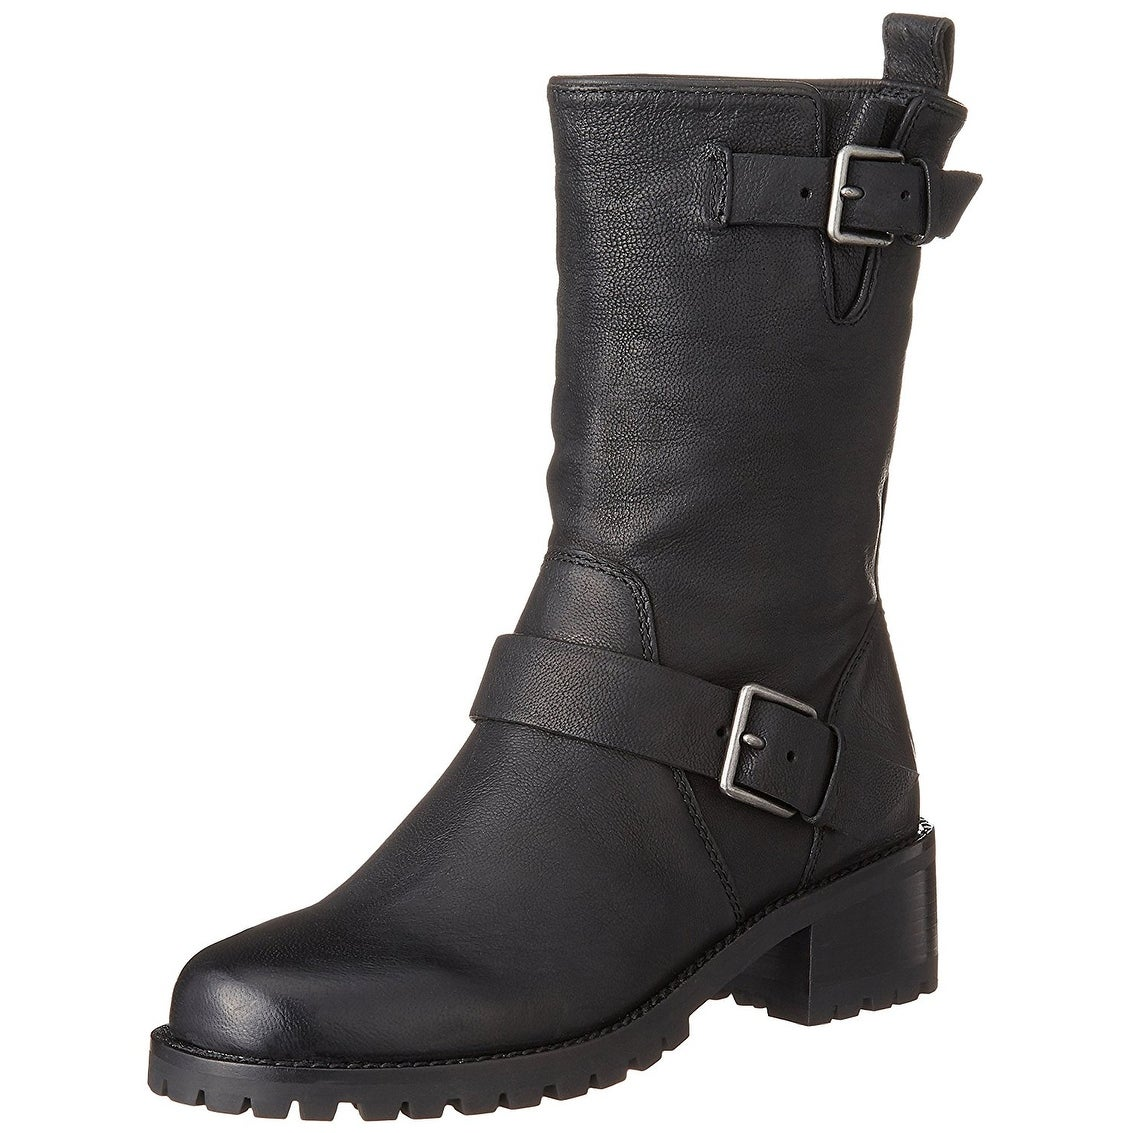 b03d9c9733564 Cole Haan Womens Hemlock Leather Round Toe Mid-Calf Motorcycle Boots